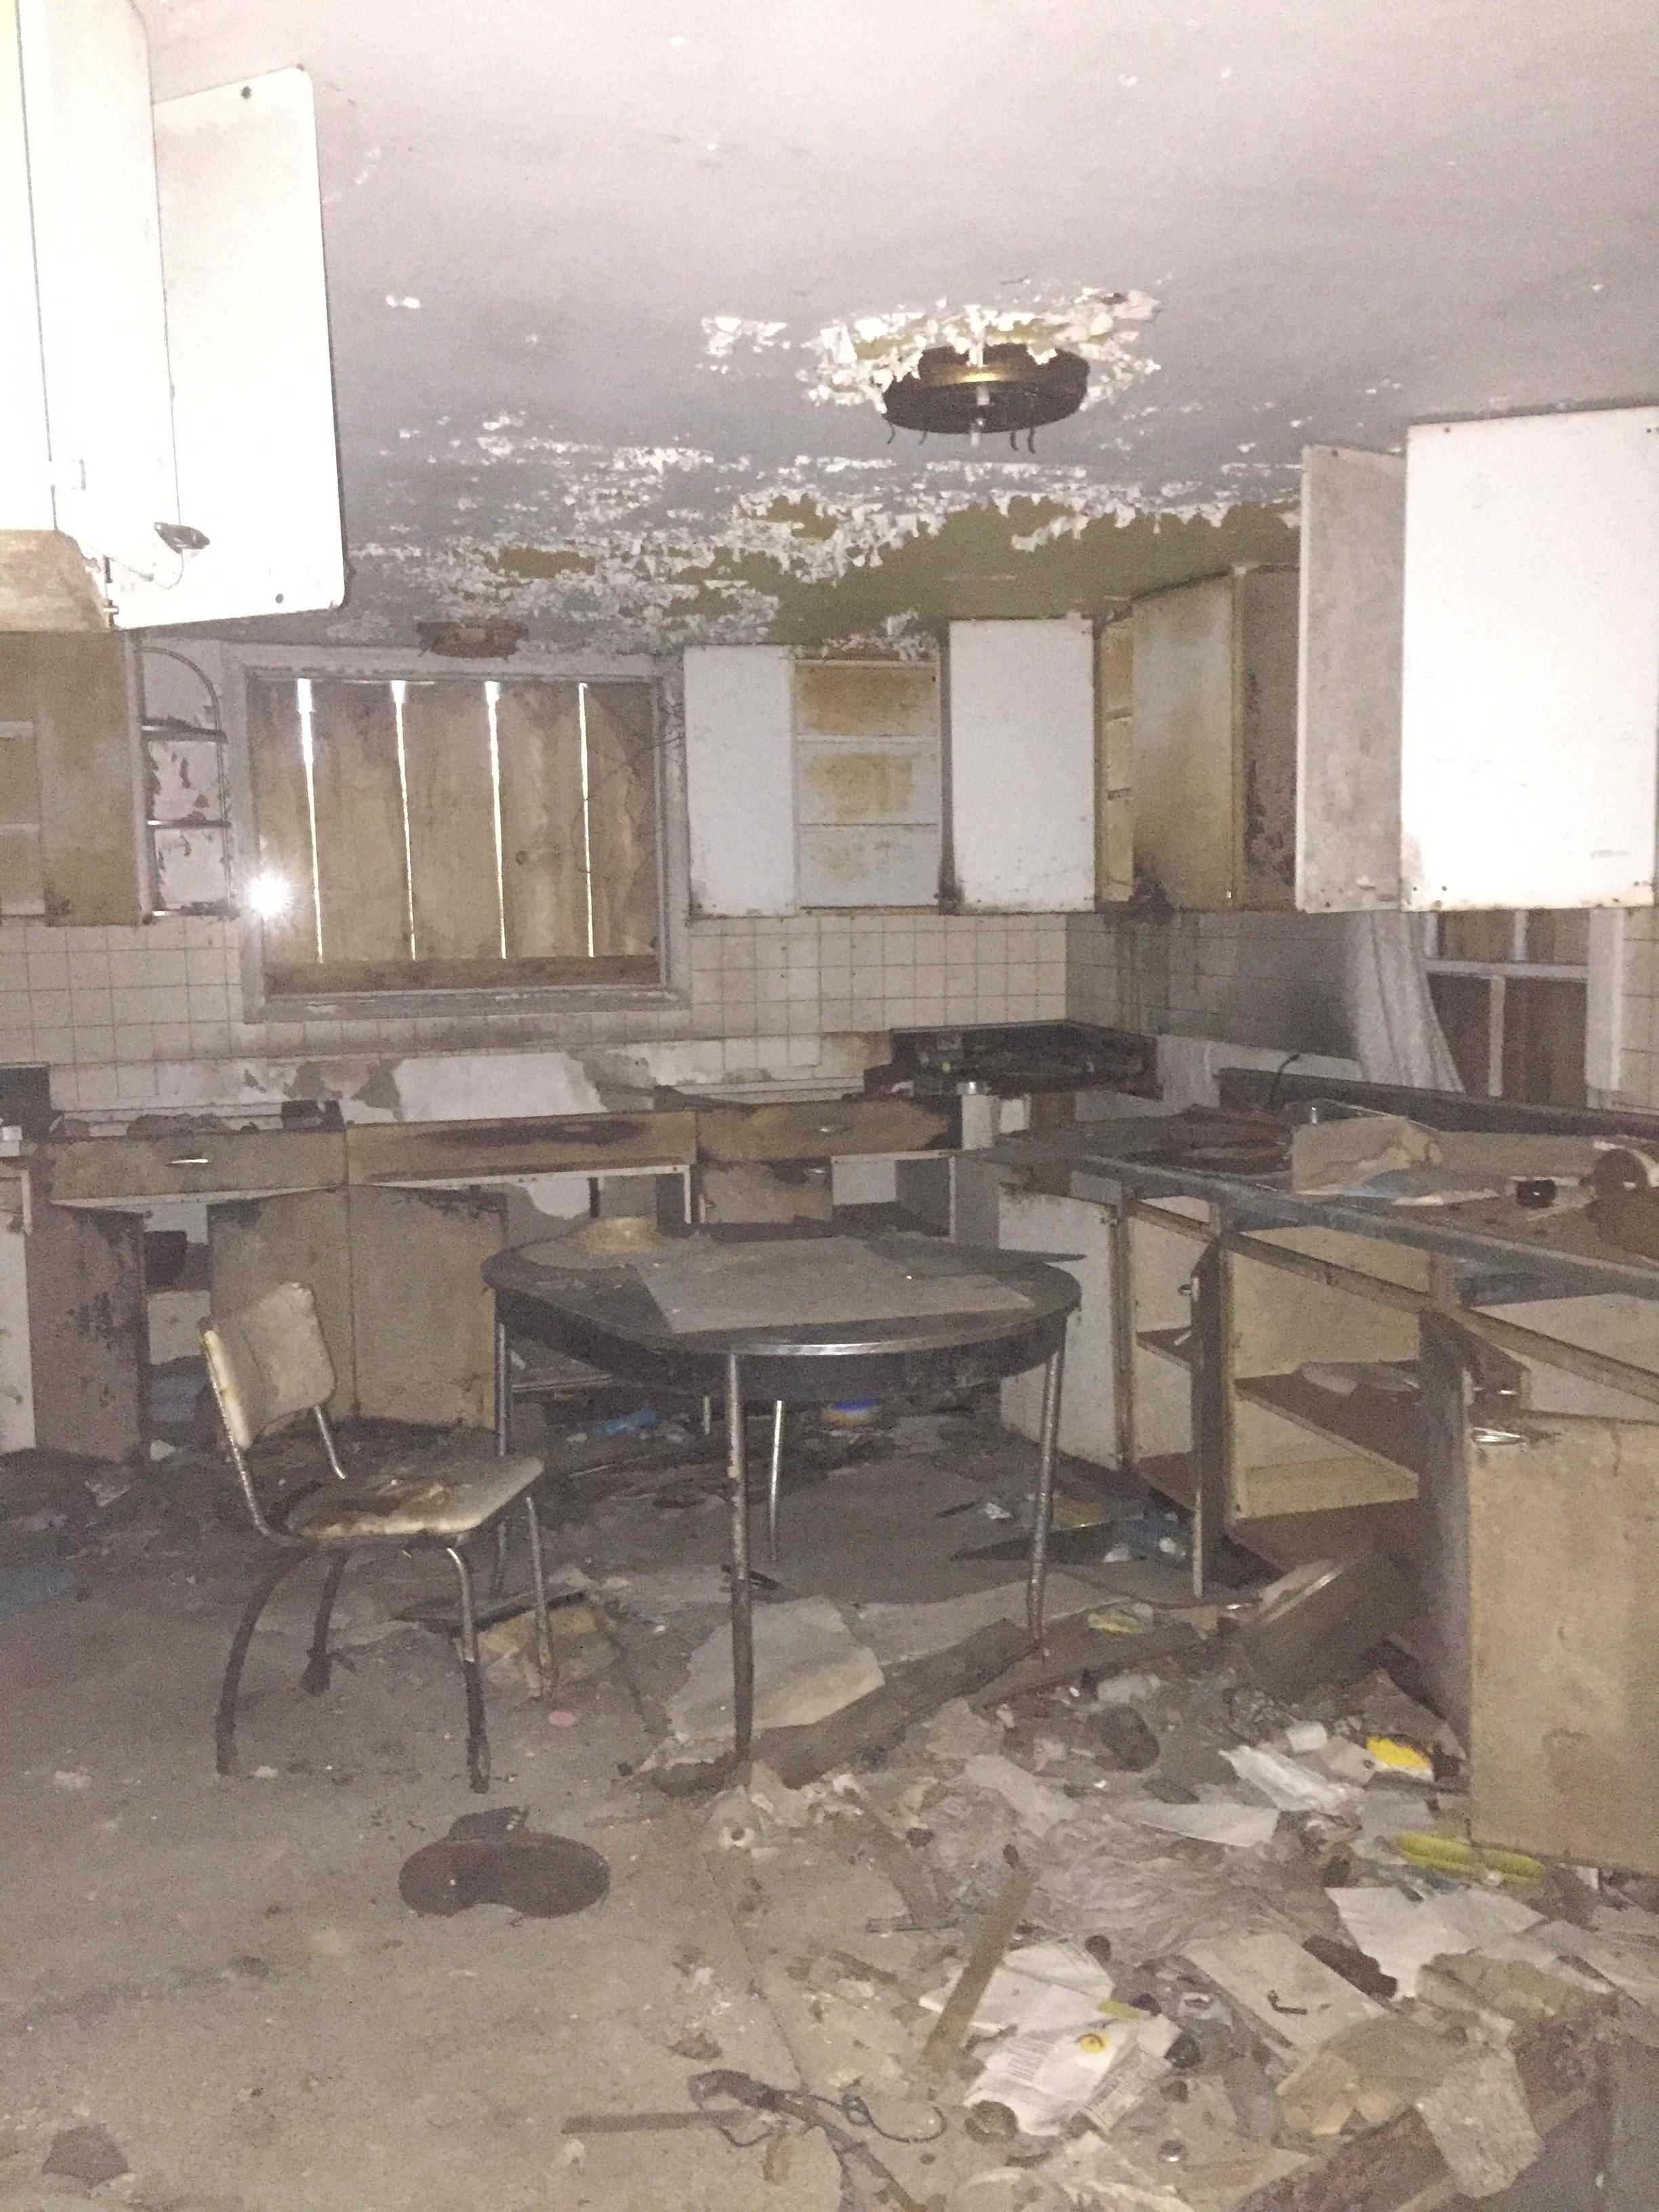 The kitchen of an abandoned house near me | Abandoned in